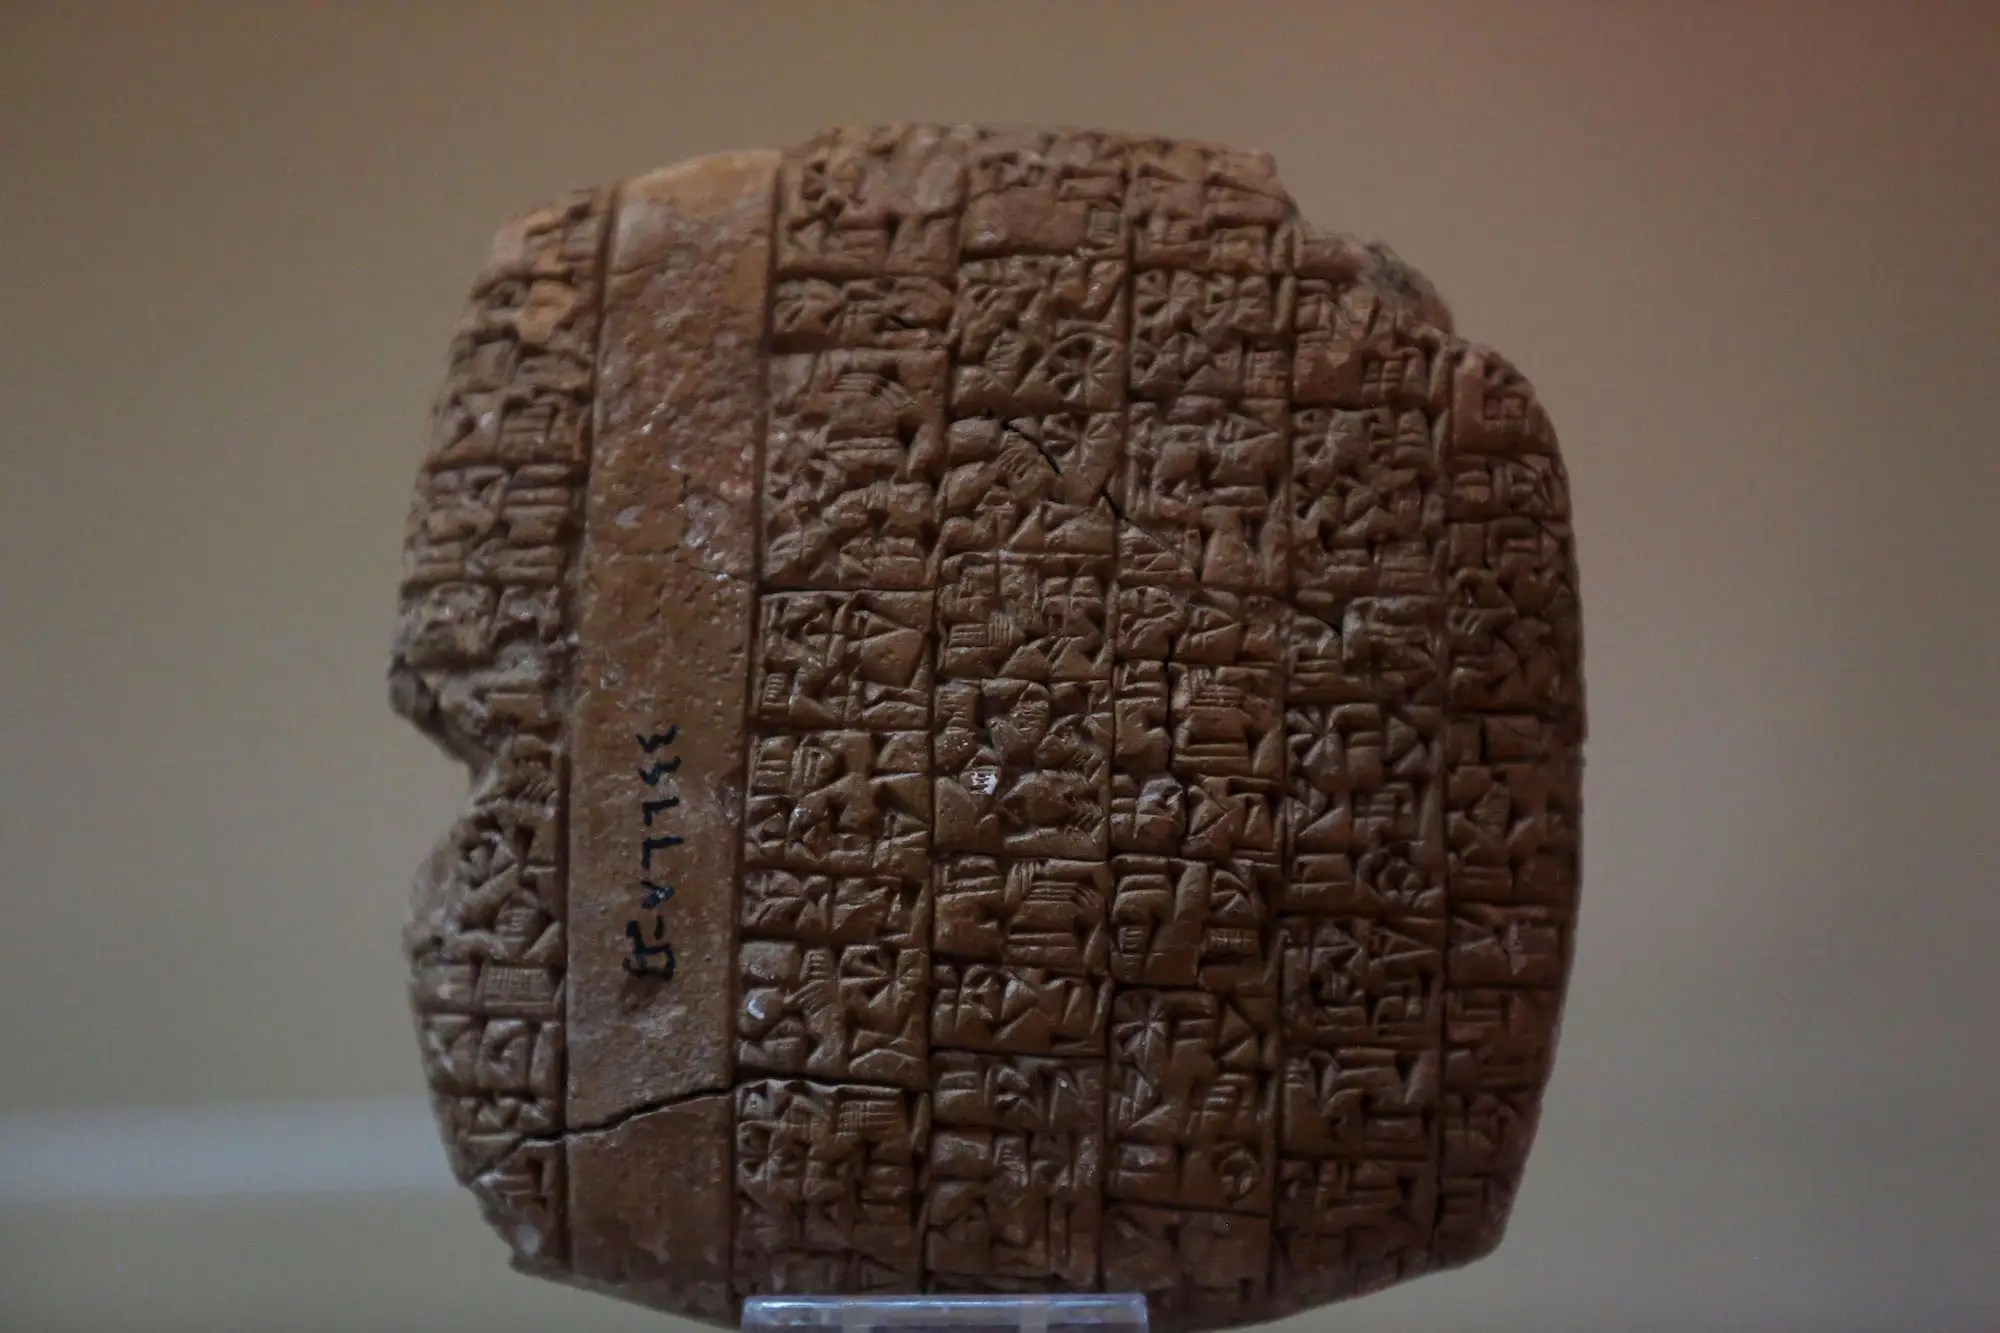 Hobby Lobby's illegal smuggling of artifacts from the Middle East